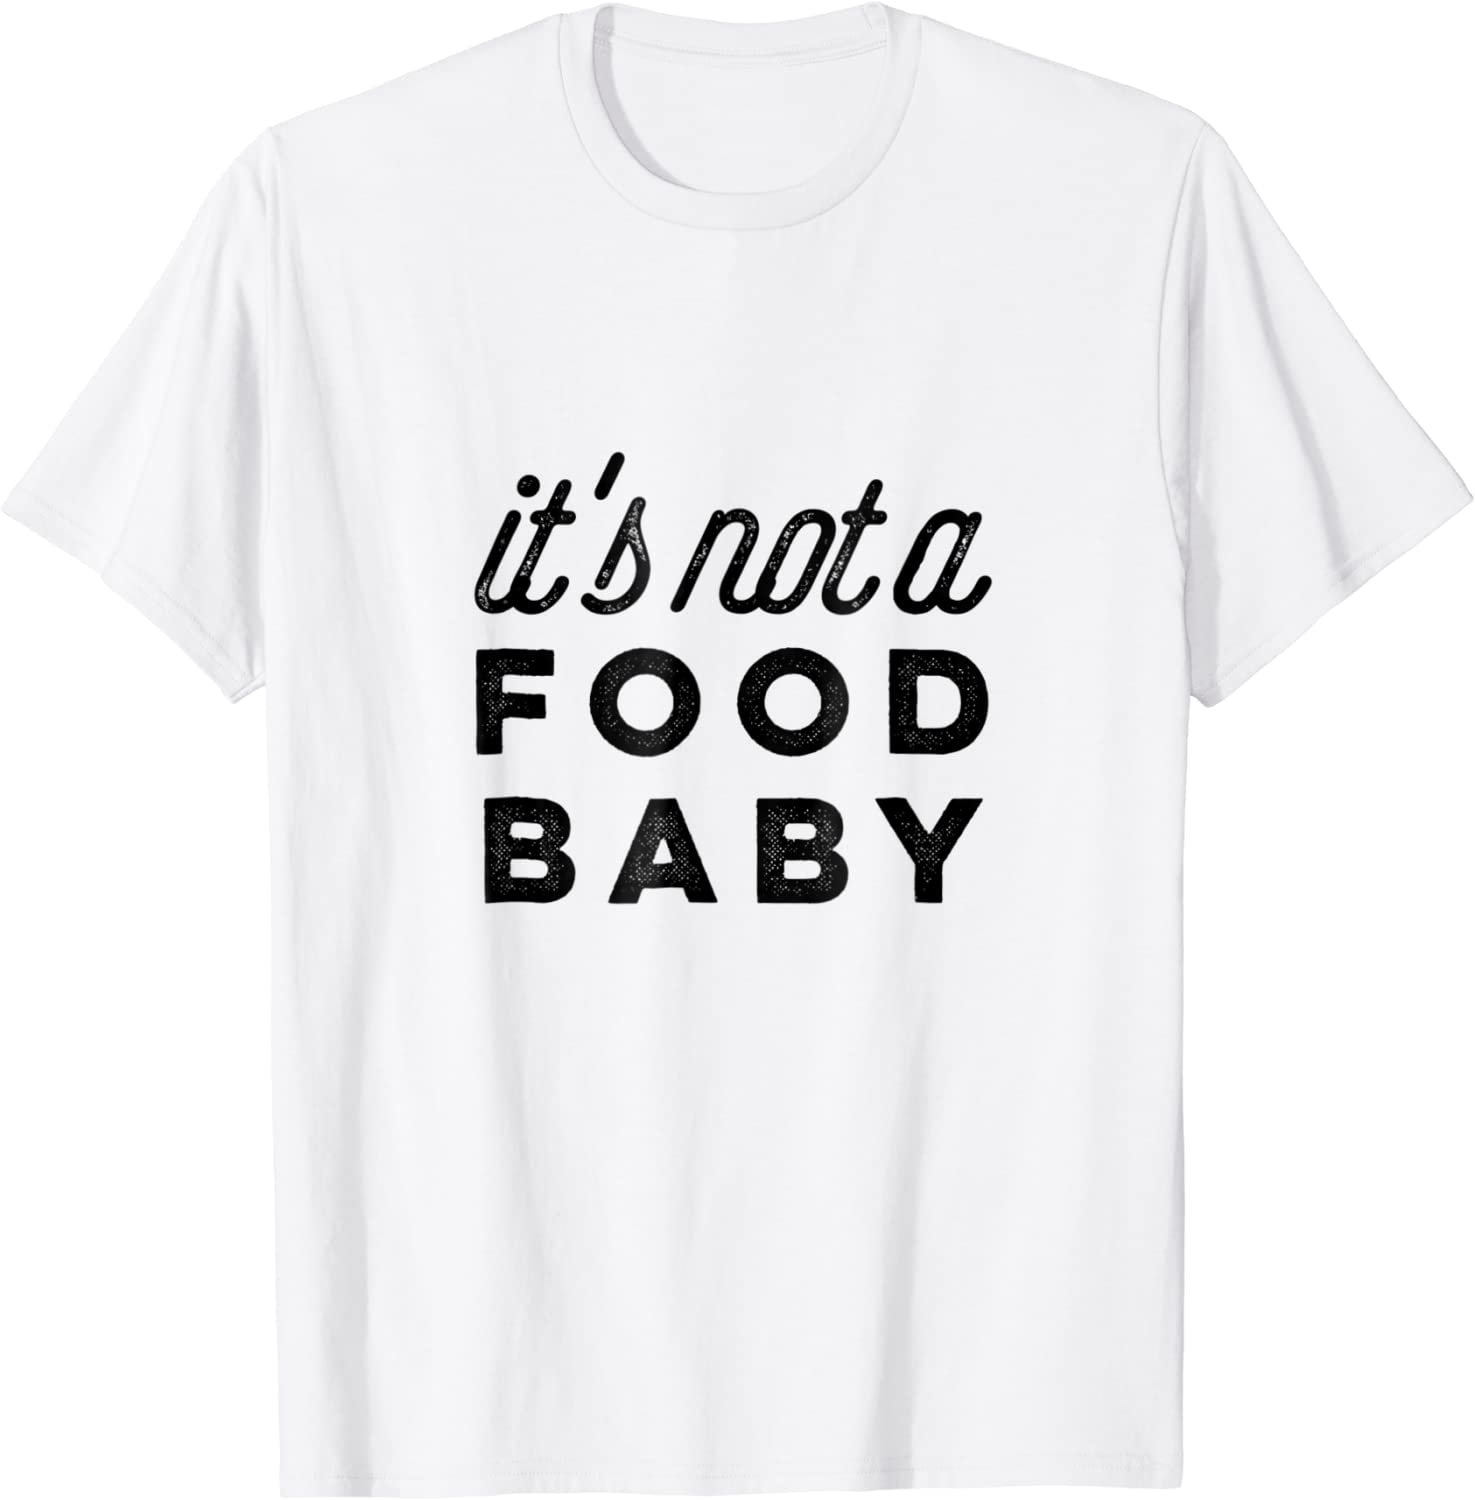 Pregnancy Announcement T-Shirt - It's Not a Food Baby Funny